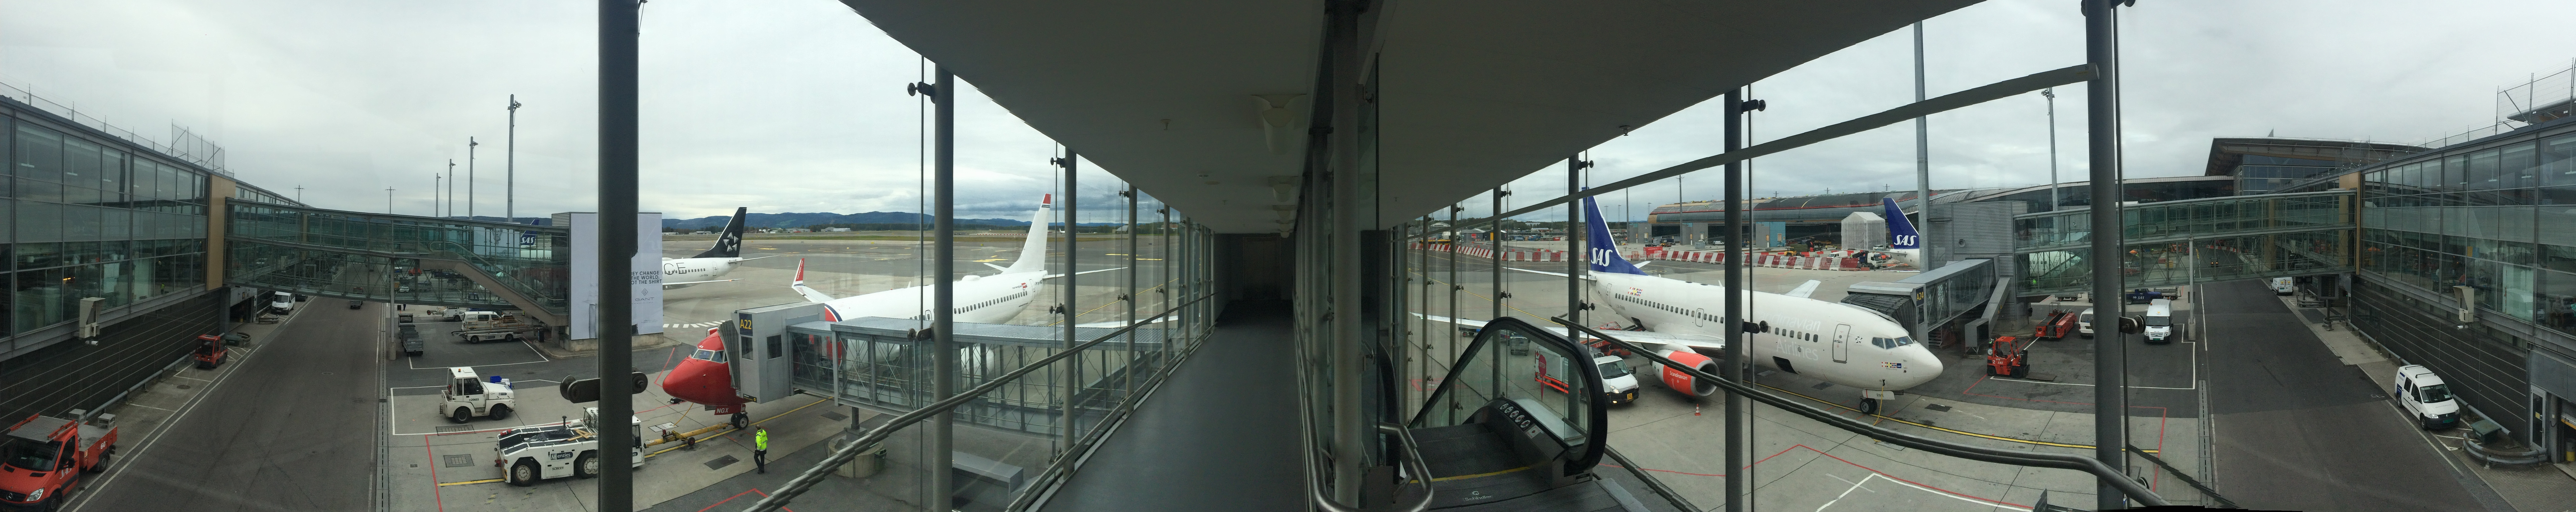 Fileoslo airport gardermoen 240 degree distorted compressed fileoslo airport gardermoen 240 degree distorted compressed sliced panorama view from inside sciox Choice Image